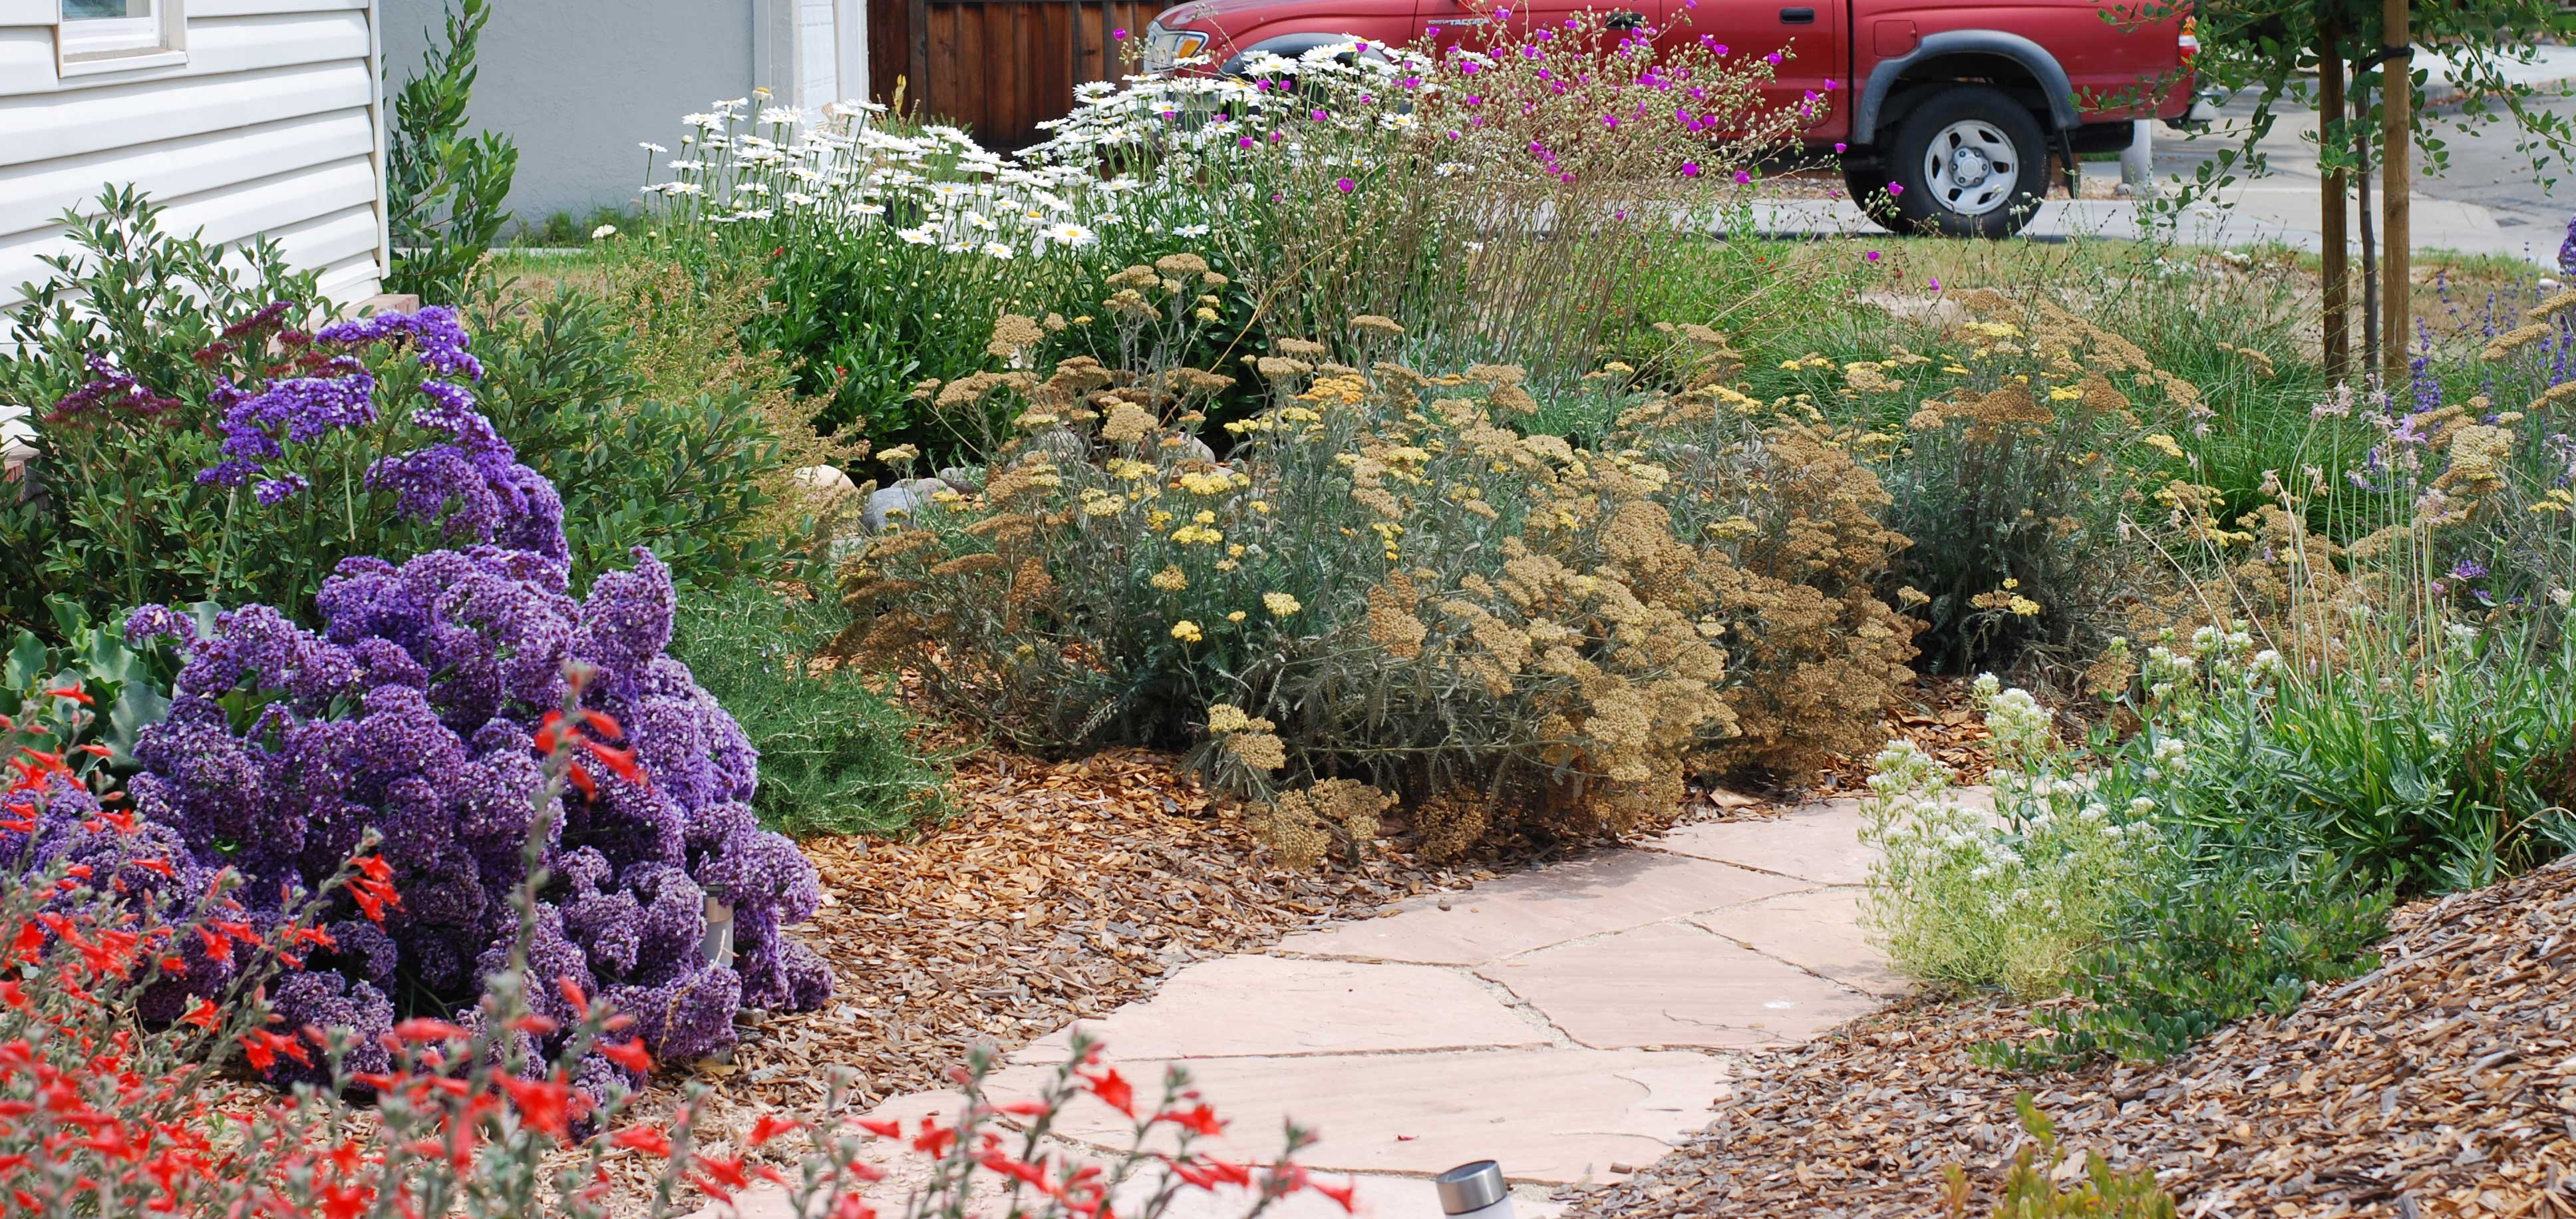 Natural front yards sustainable landscaping - Mediterranean garden plants colors and scents ...